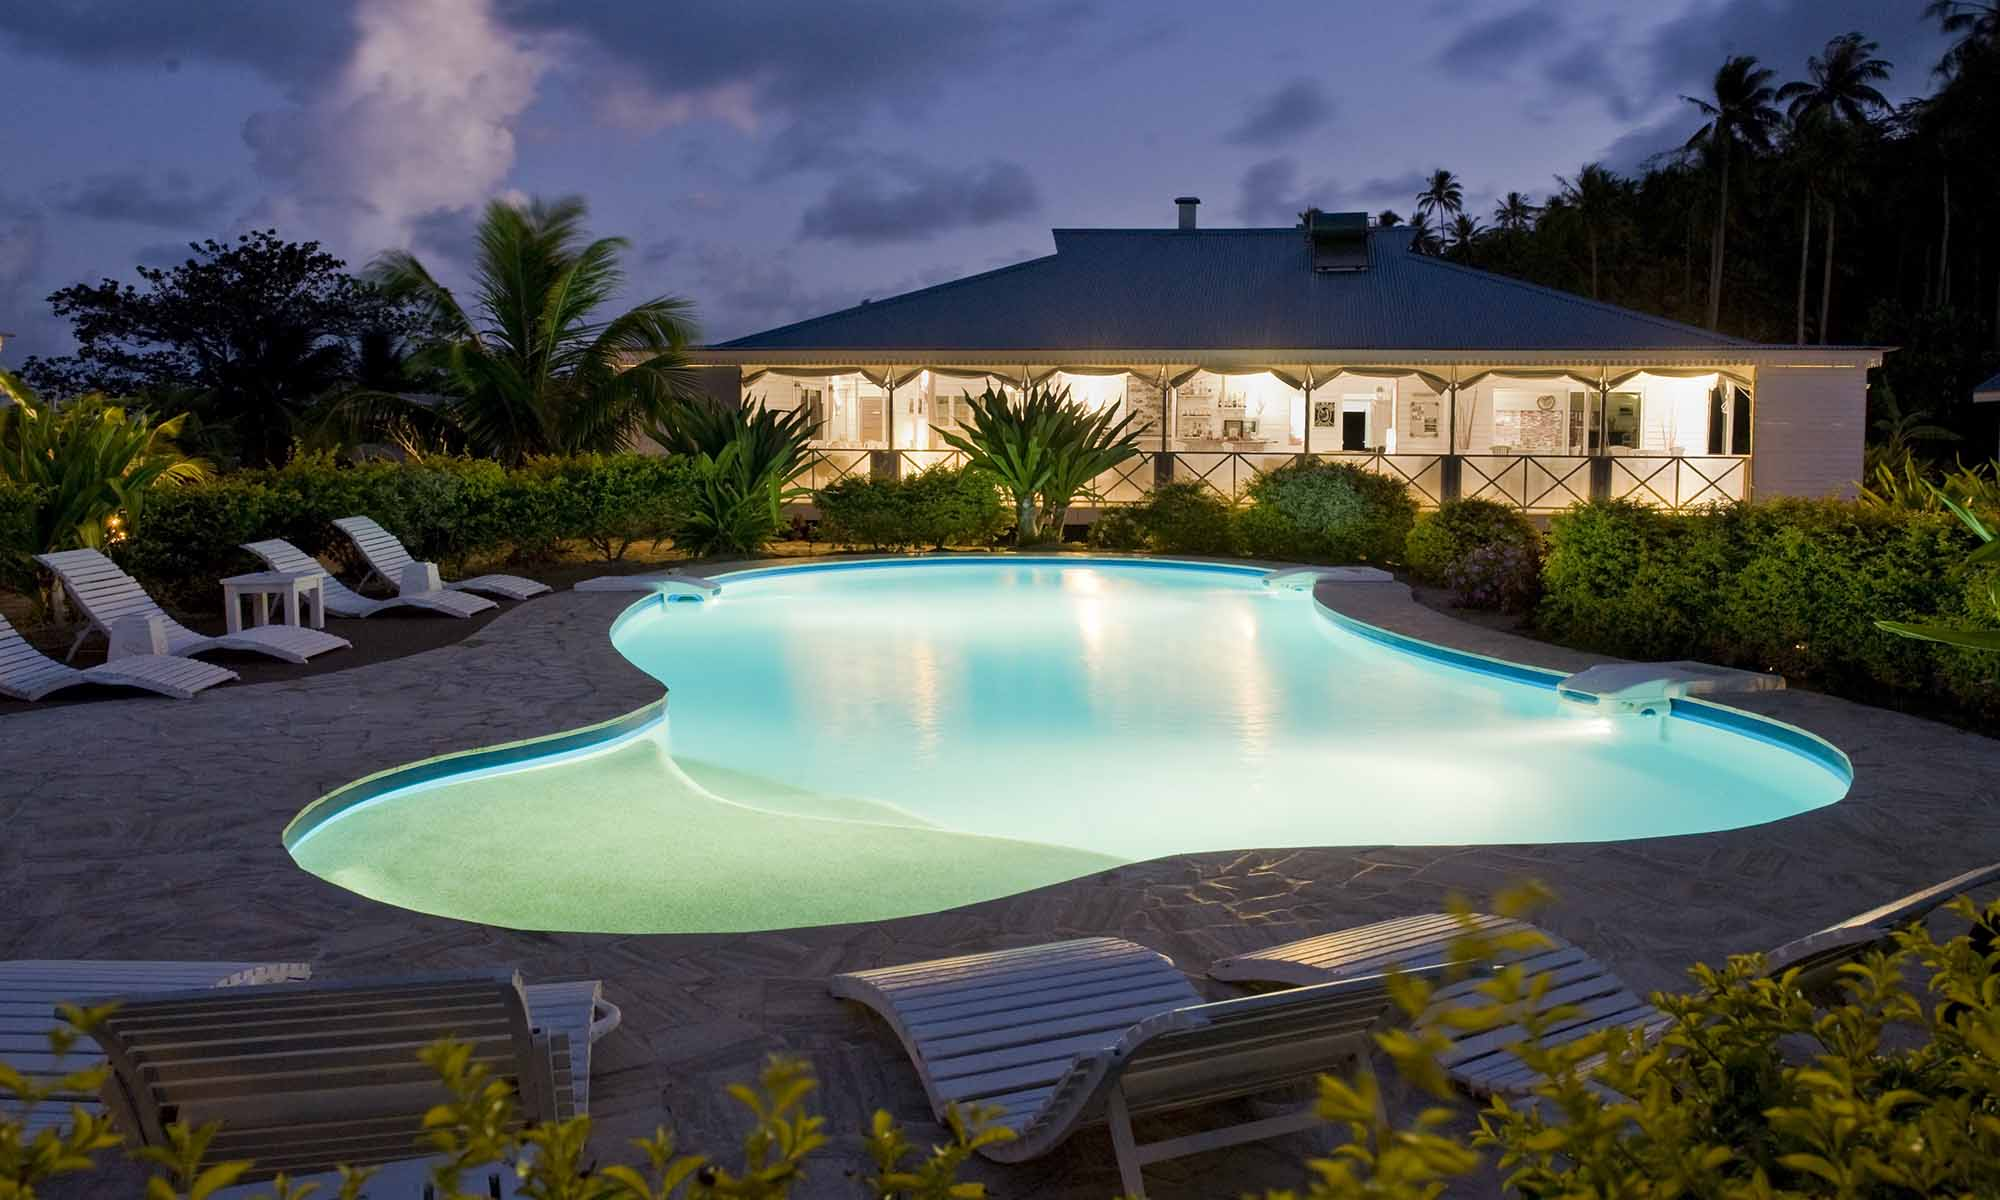 Opoa Beach Hotel, Pool at Night